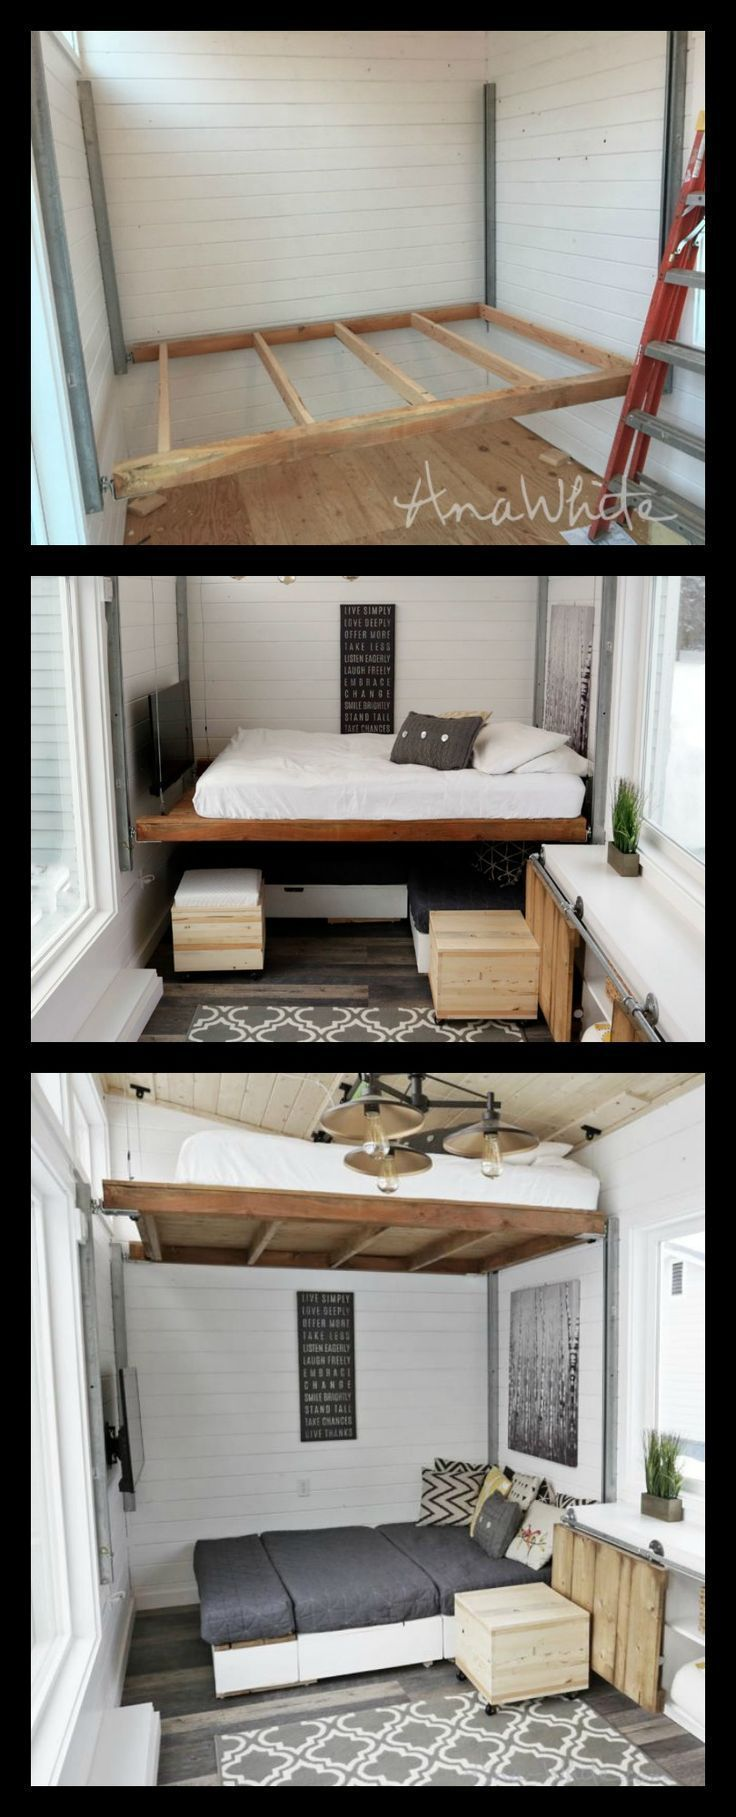 DIY Elevator Bed for Tiny House